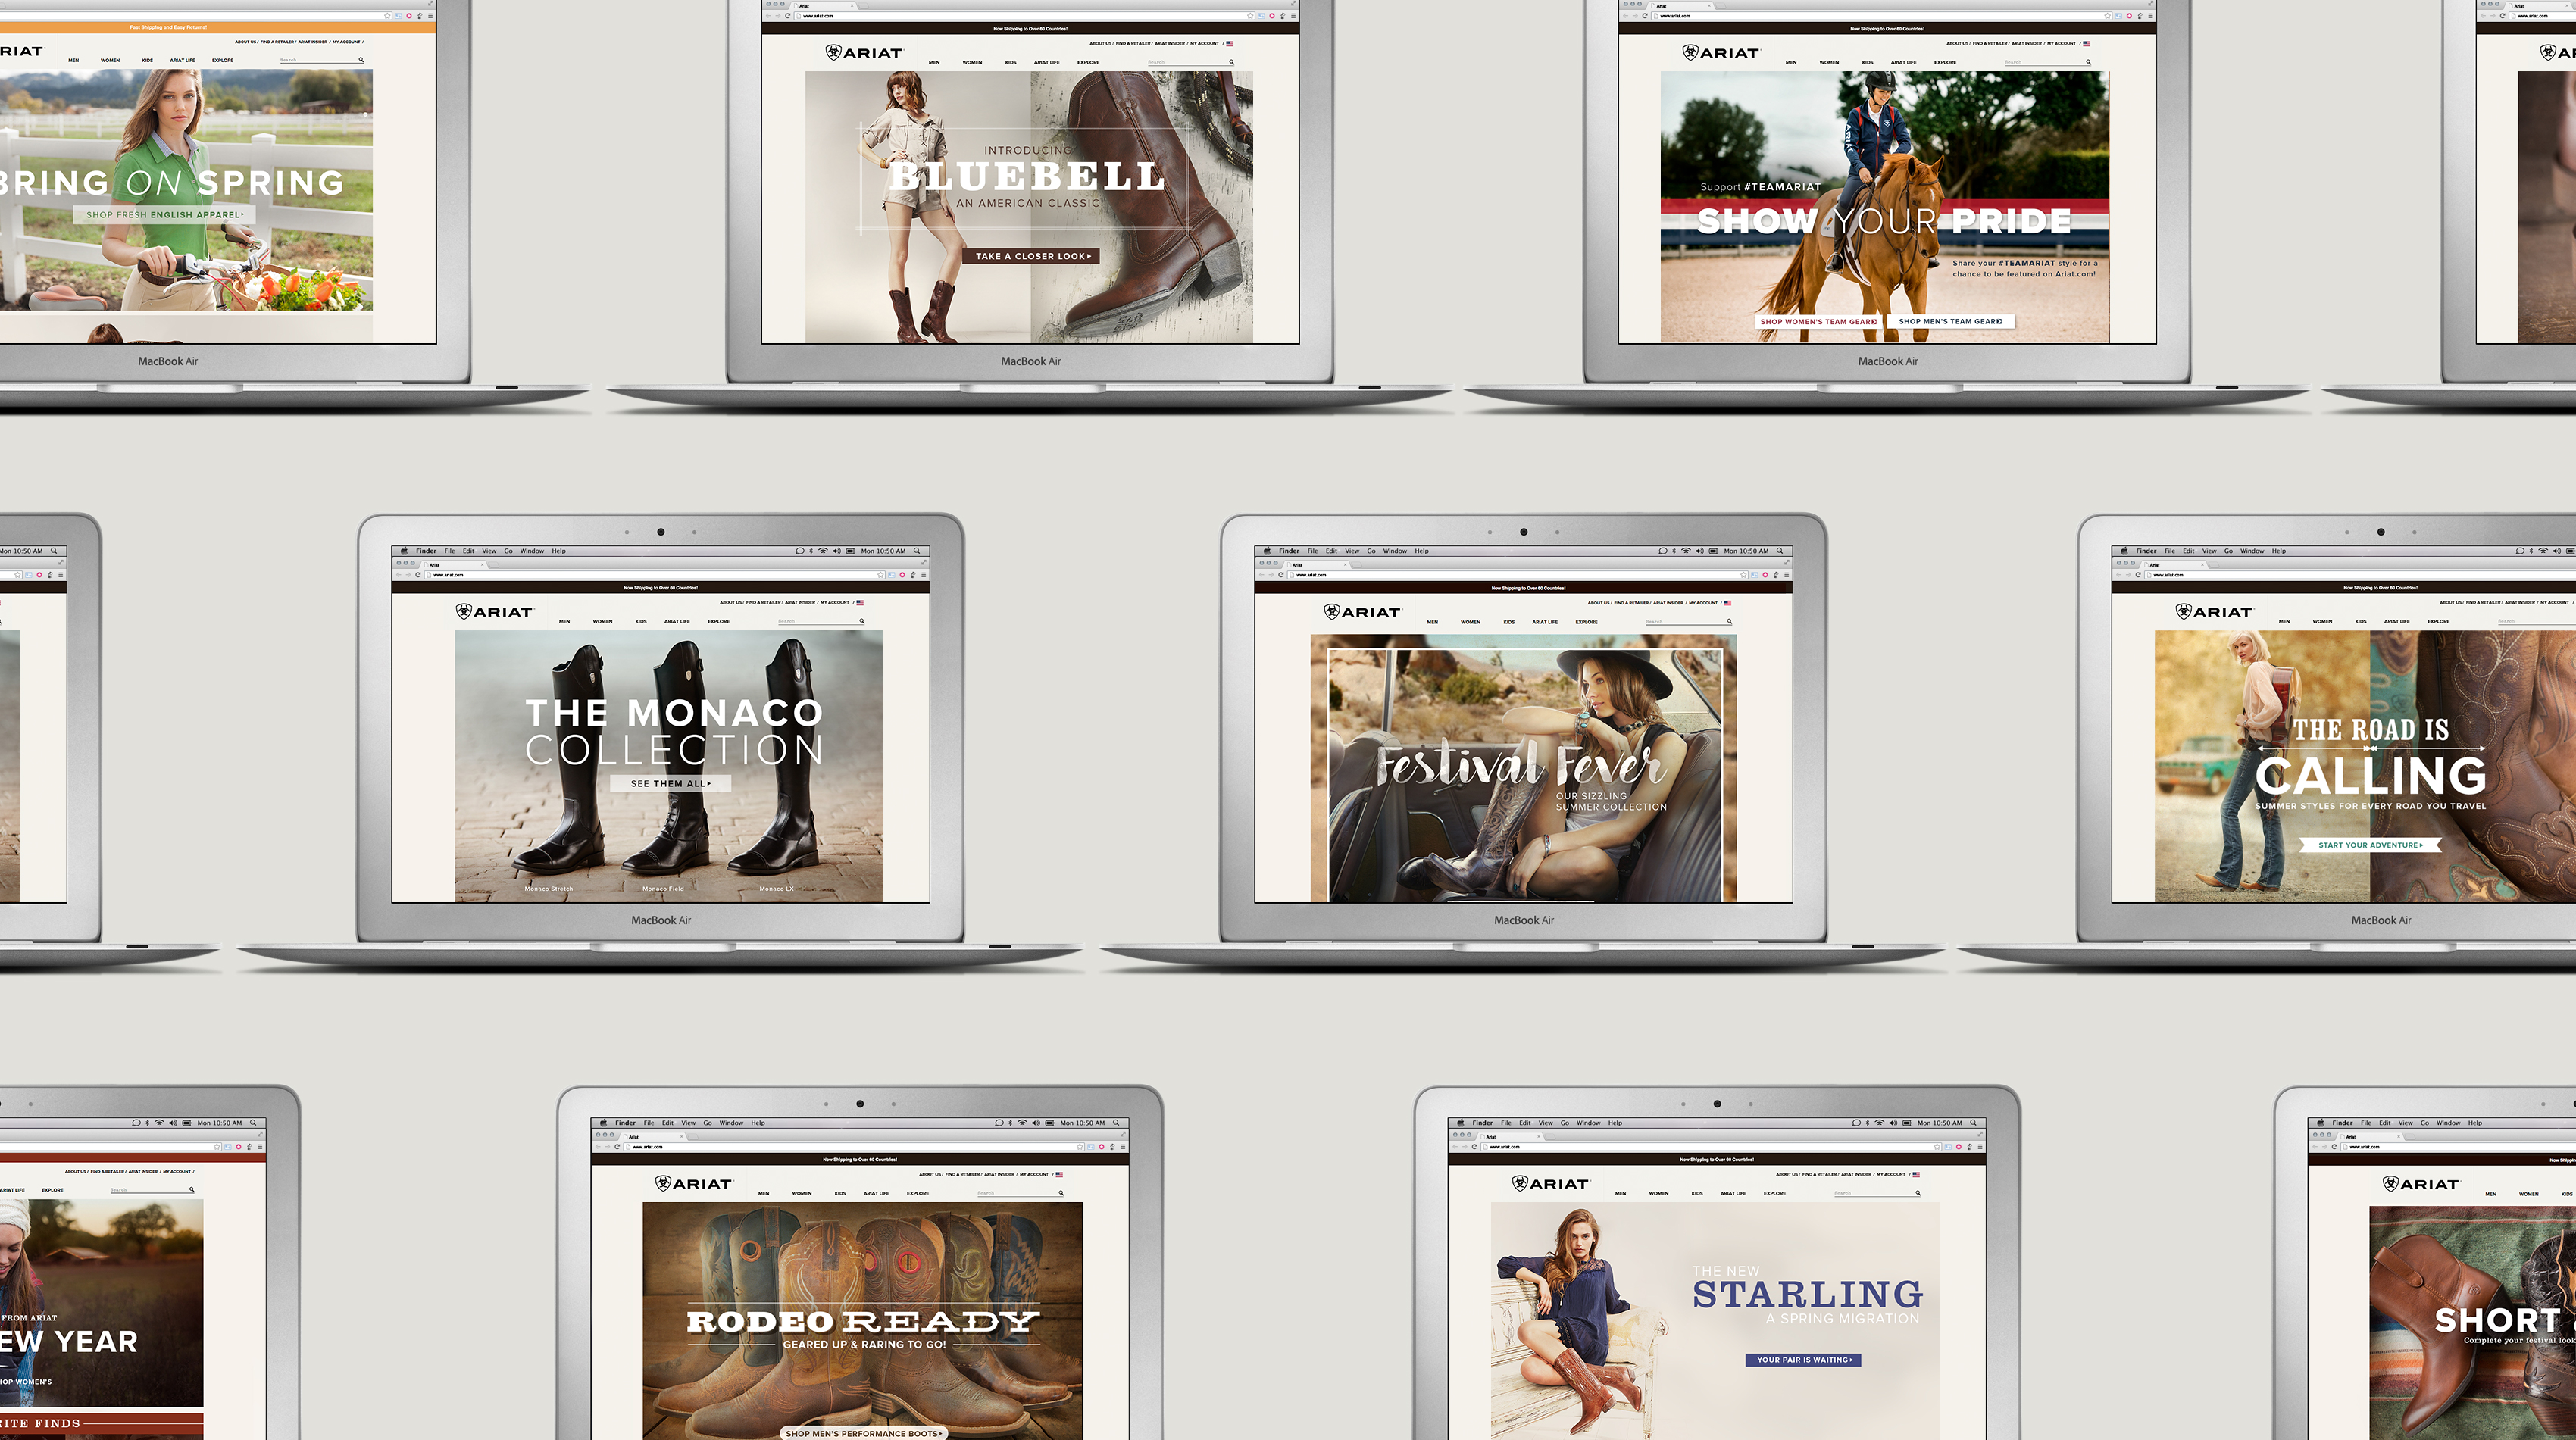 Collection of Ariat.com webpages on computers